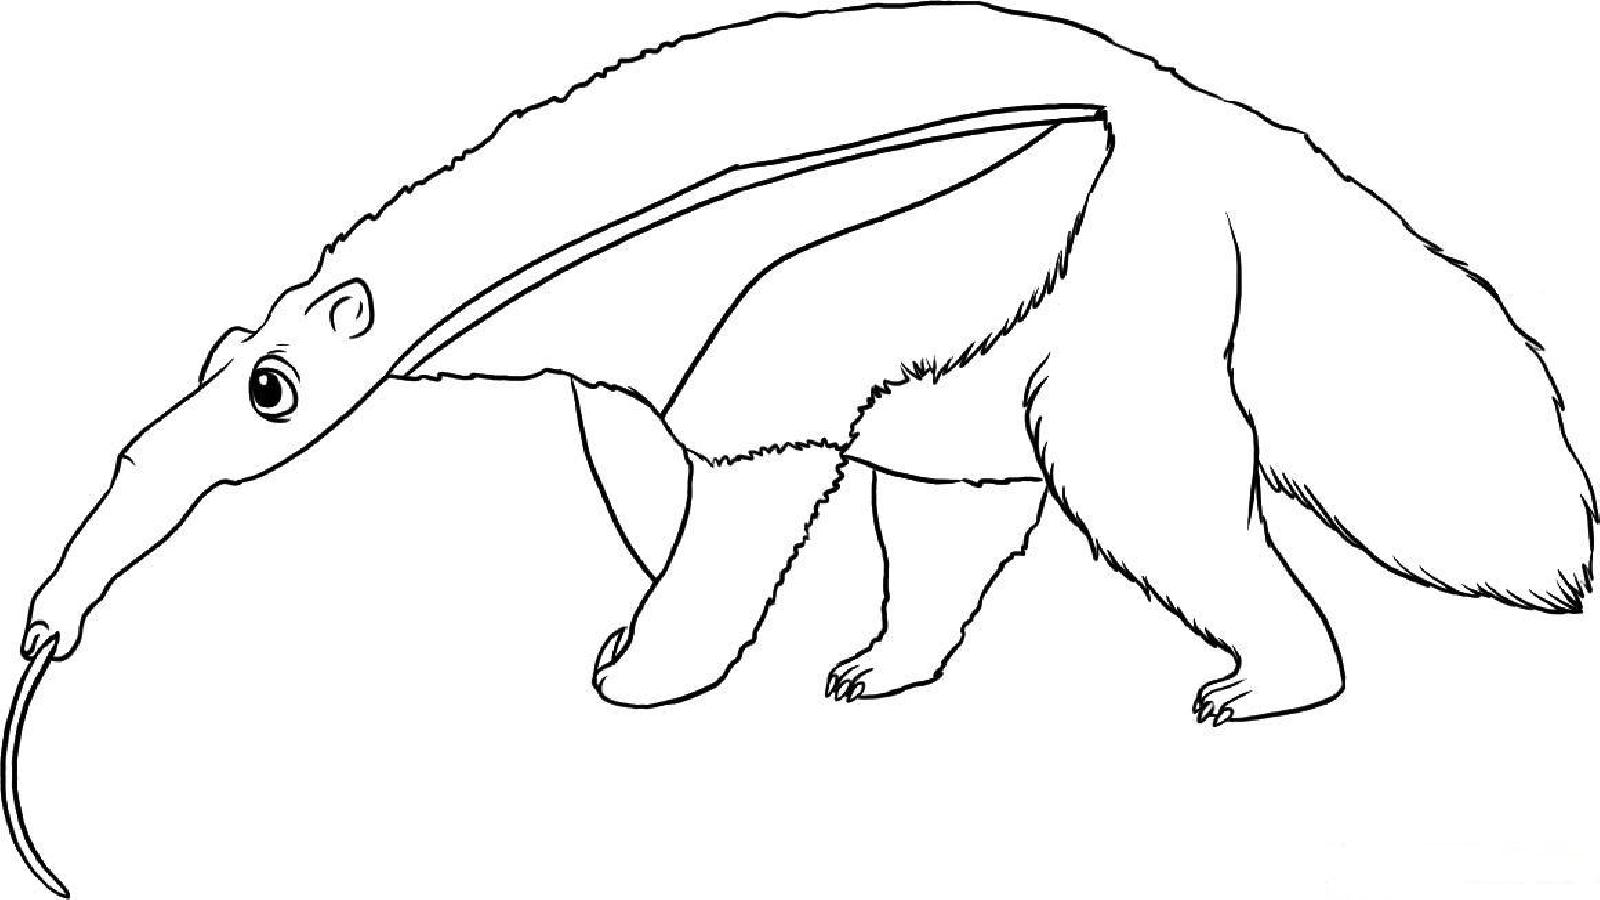 Anteater Eating Ants Coloring Page